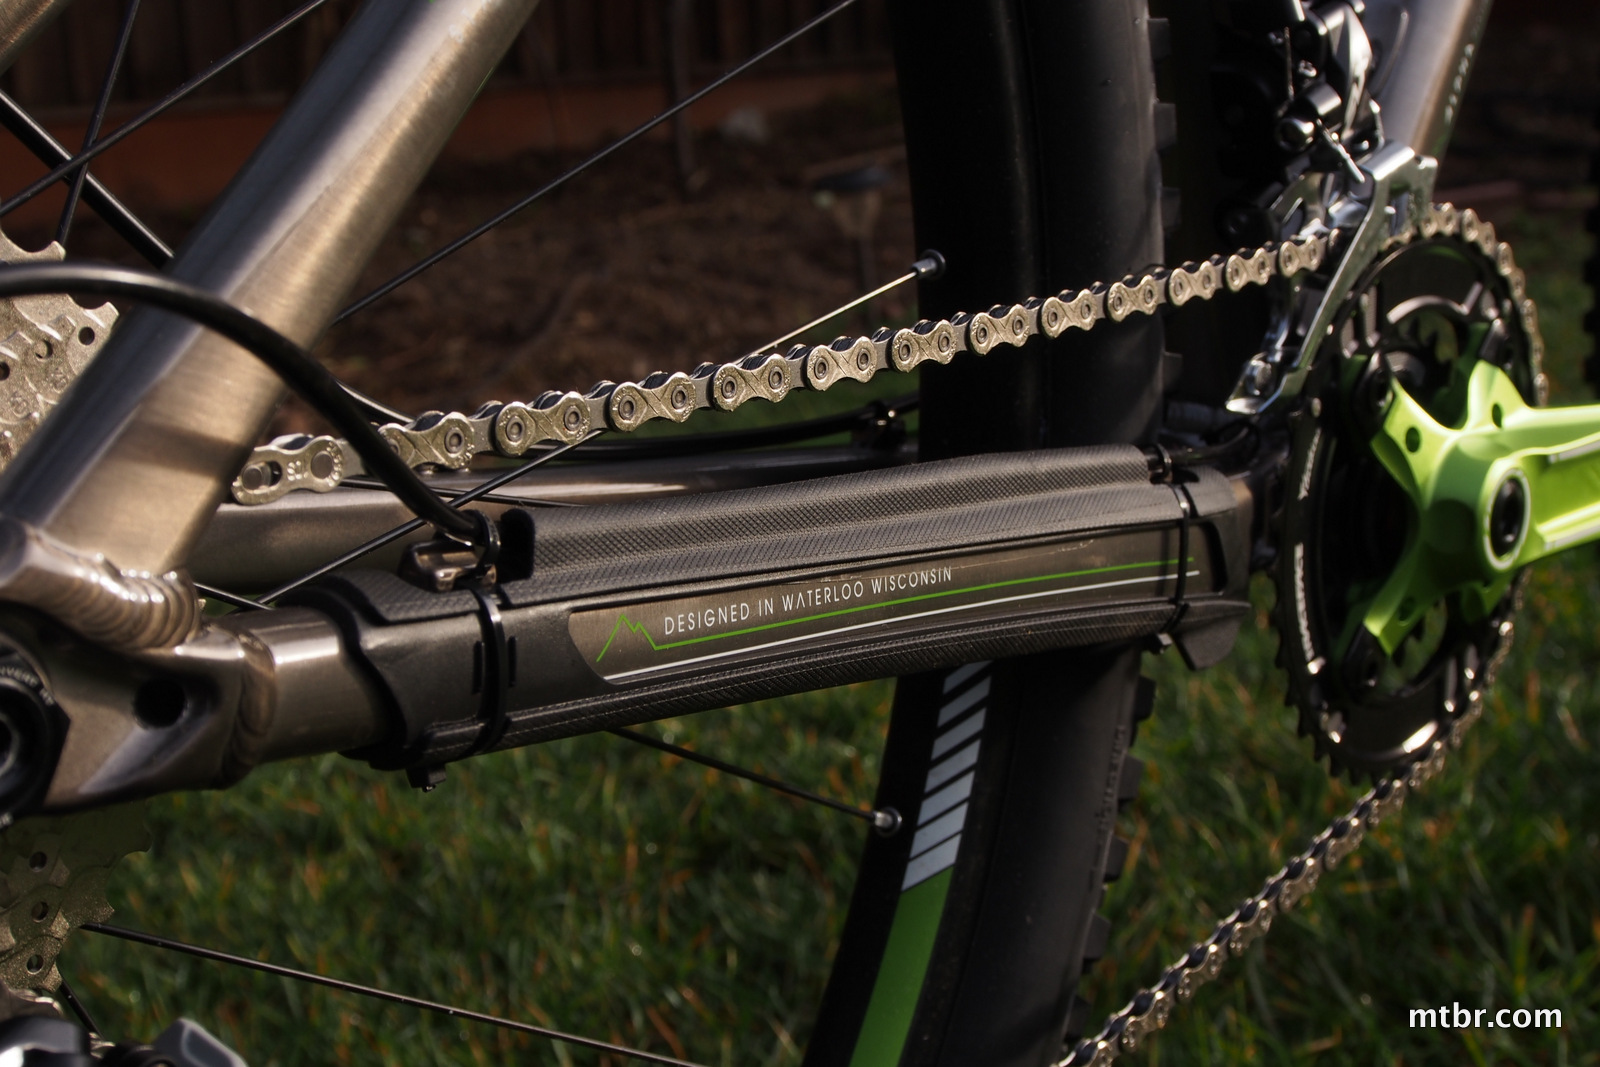 Trek Stache 8 Chainstay Guard